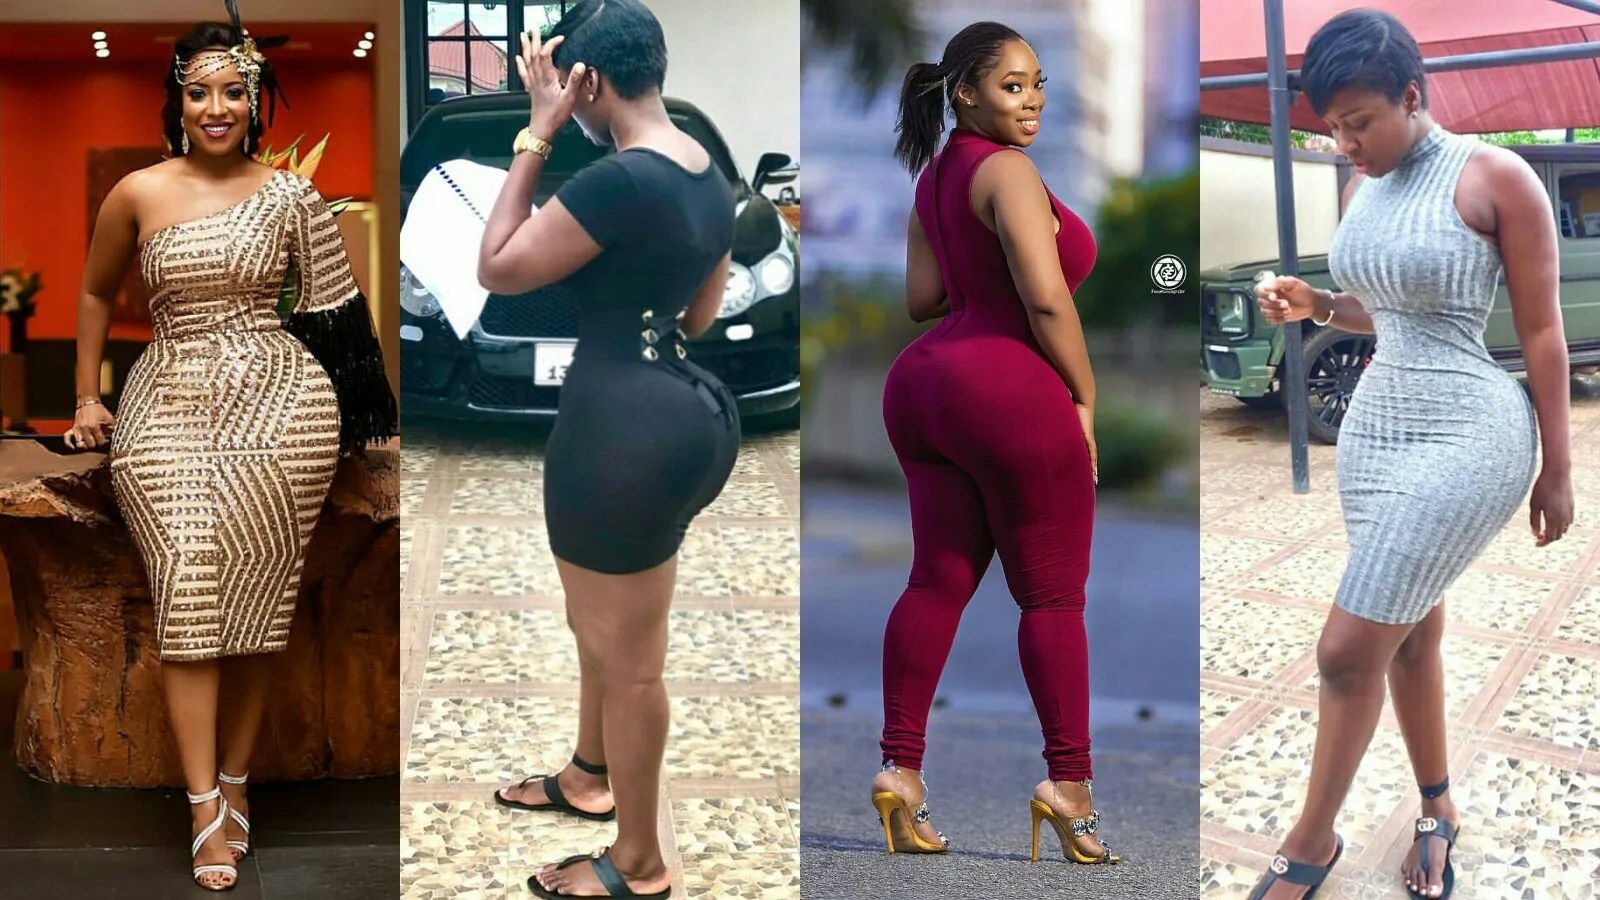 Hips and Bums Enlargement Pills and Cream